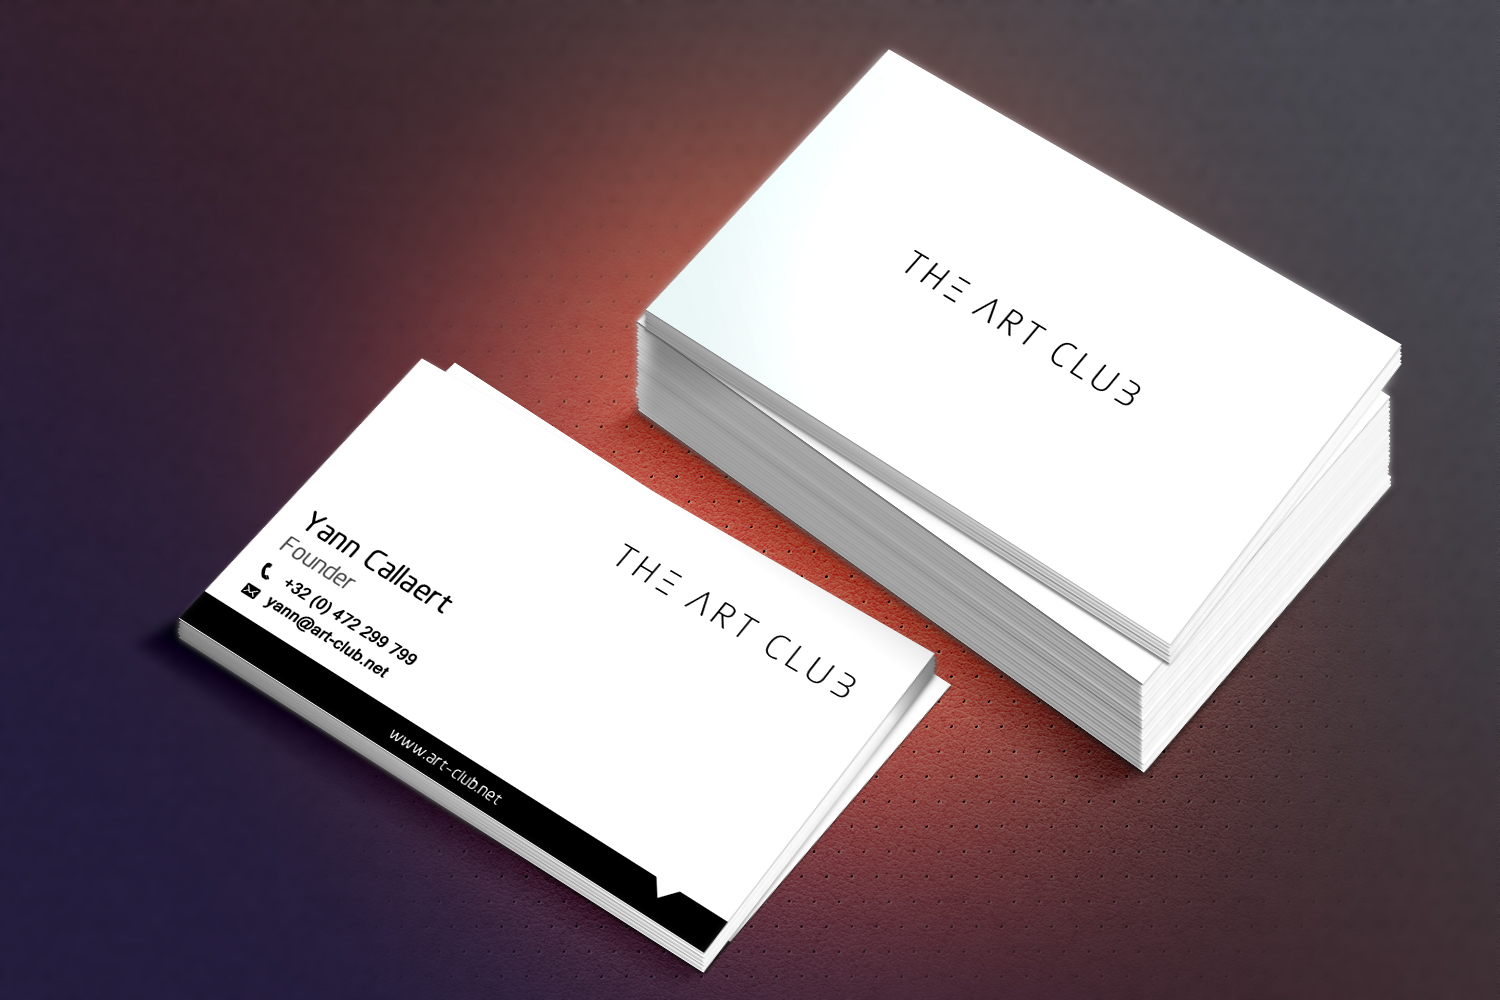 Upmarket serious business card design for caos vof by sandaruwan business card design by sandaruwan for online art gallery art management firm looking for a reheart Image collections